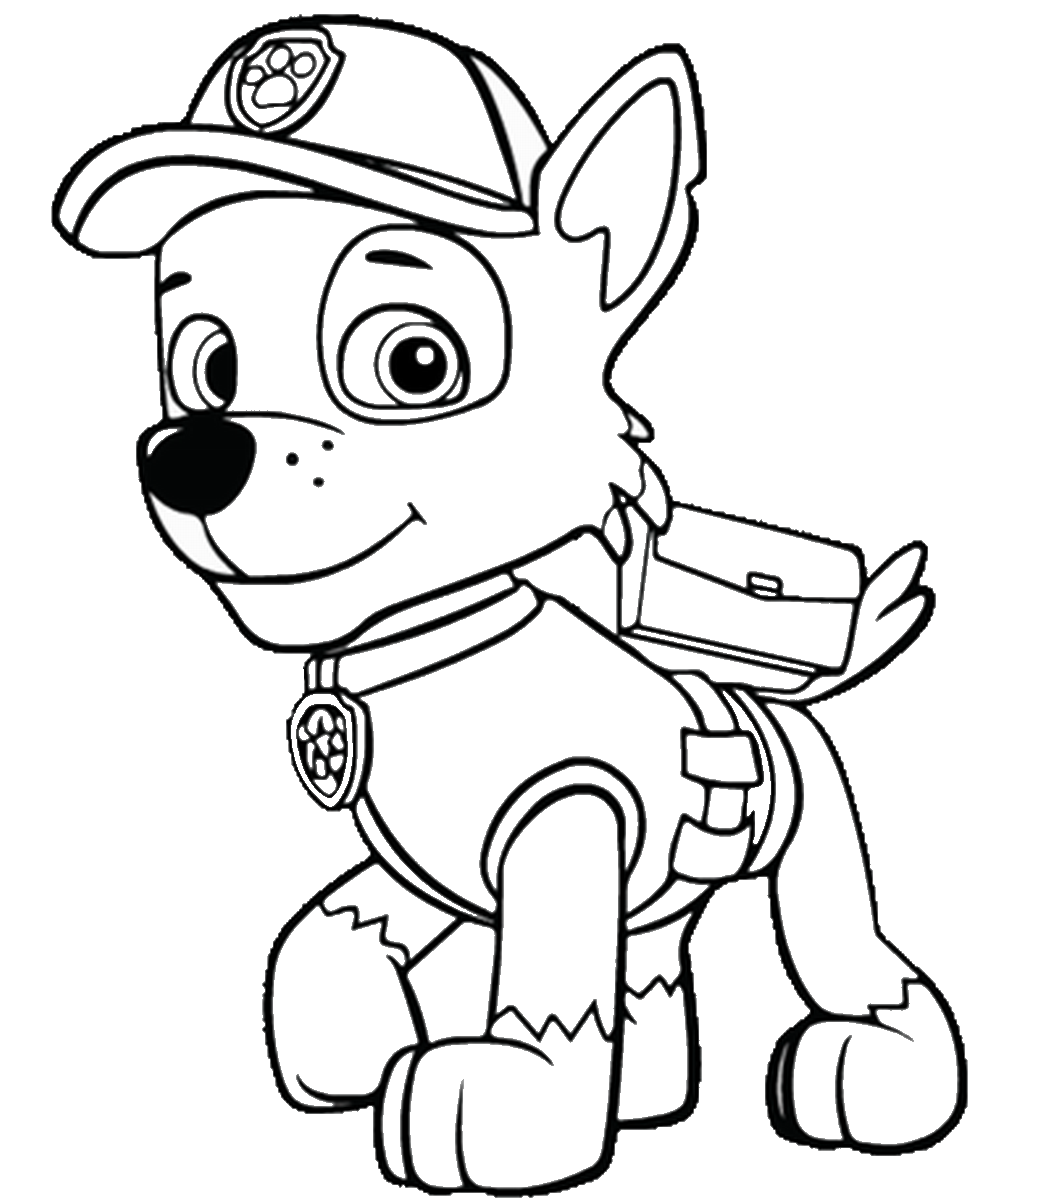 paw patrol coloring pages to print - all the paw potrol free colouring pages